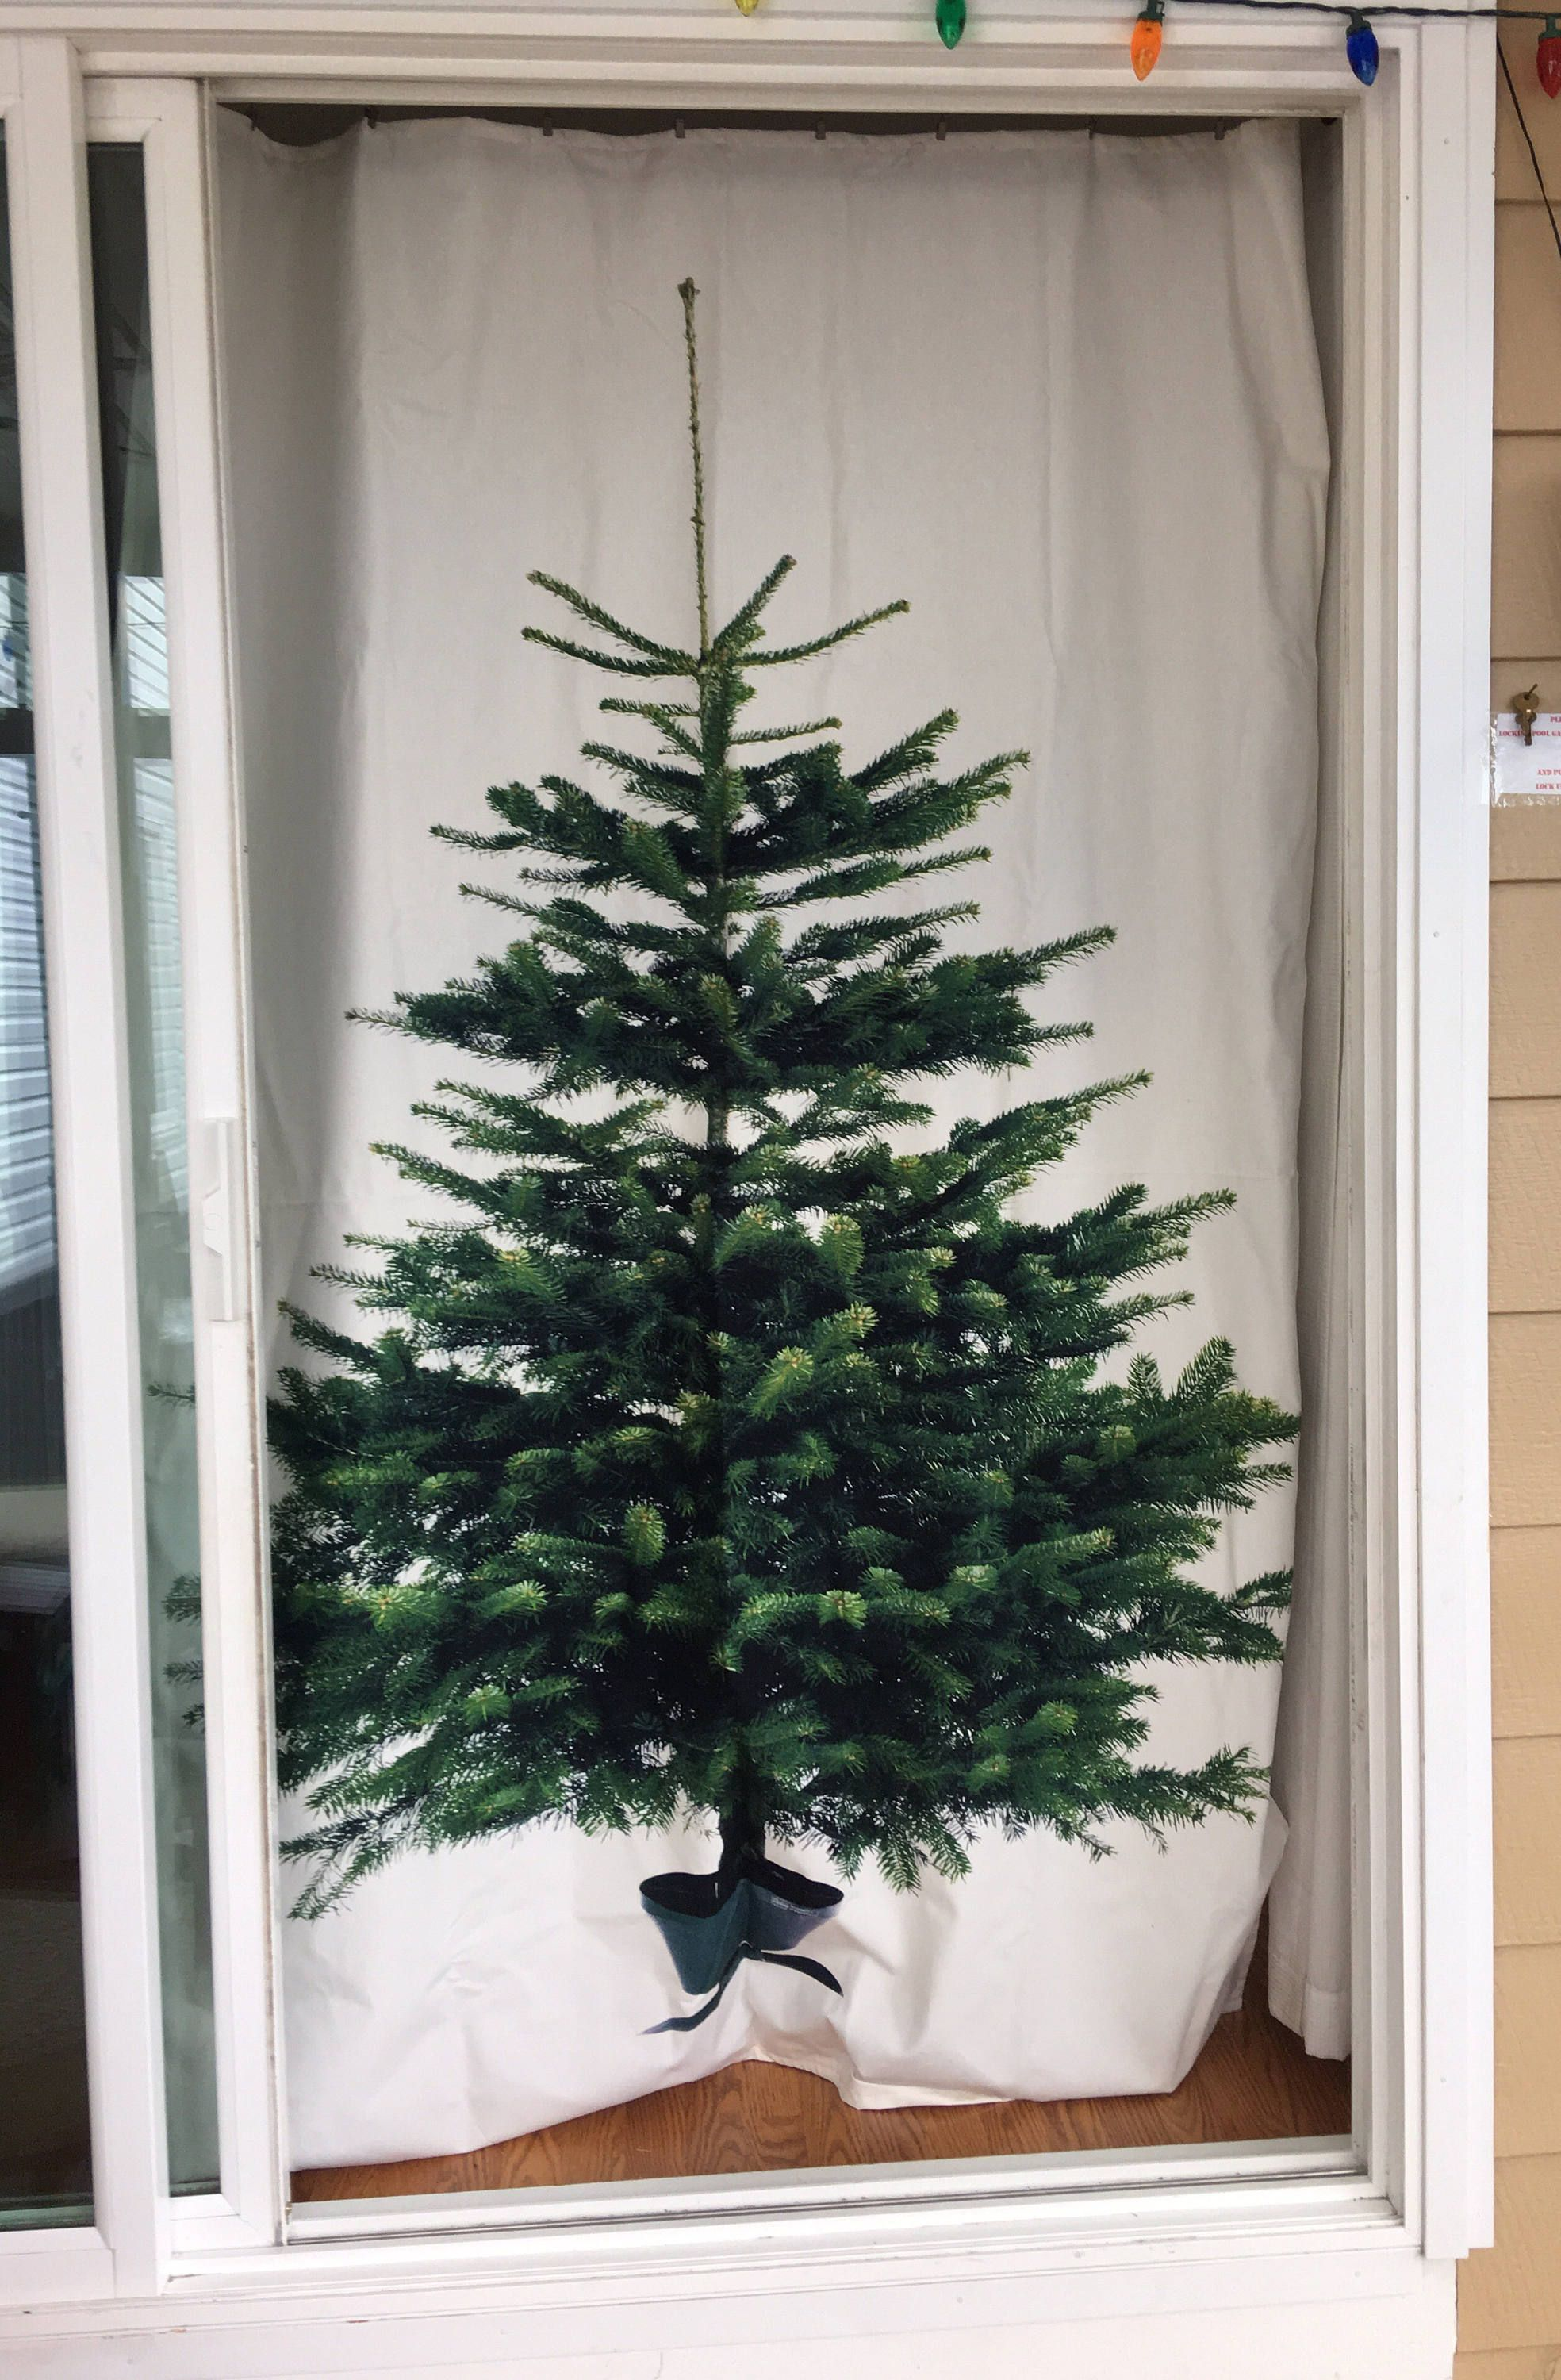 Decorative Curtains For Living Room: Christmas Tree Curtain Or Decoration Panel / Fabric